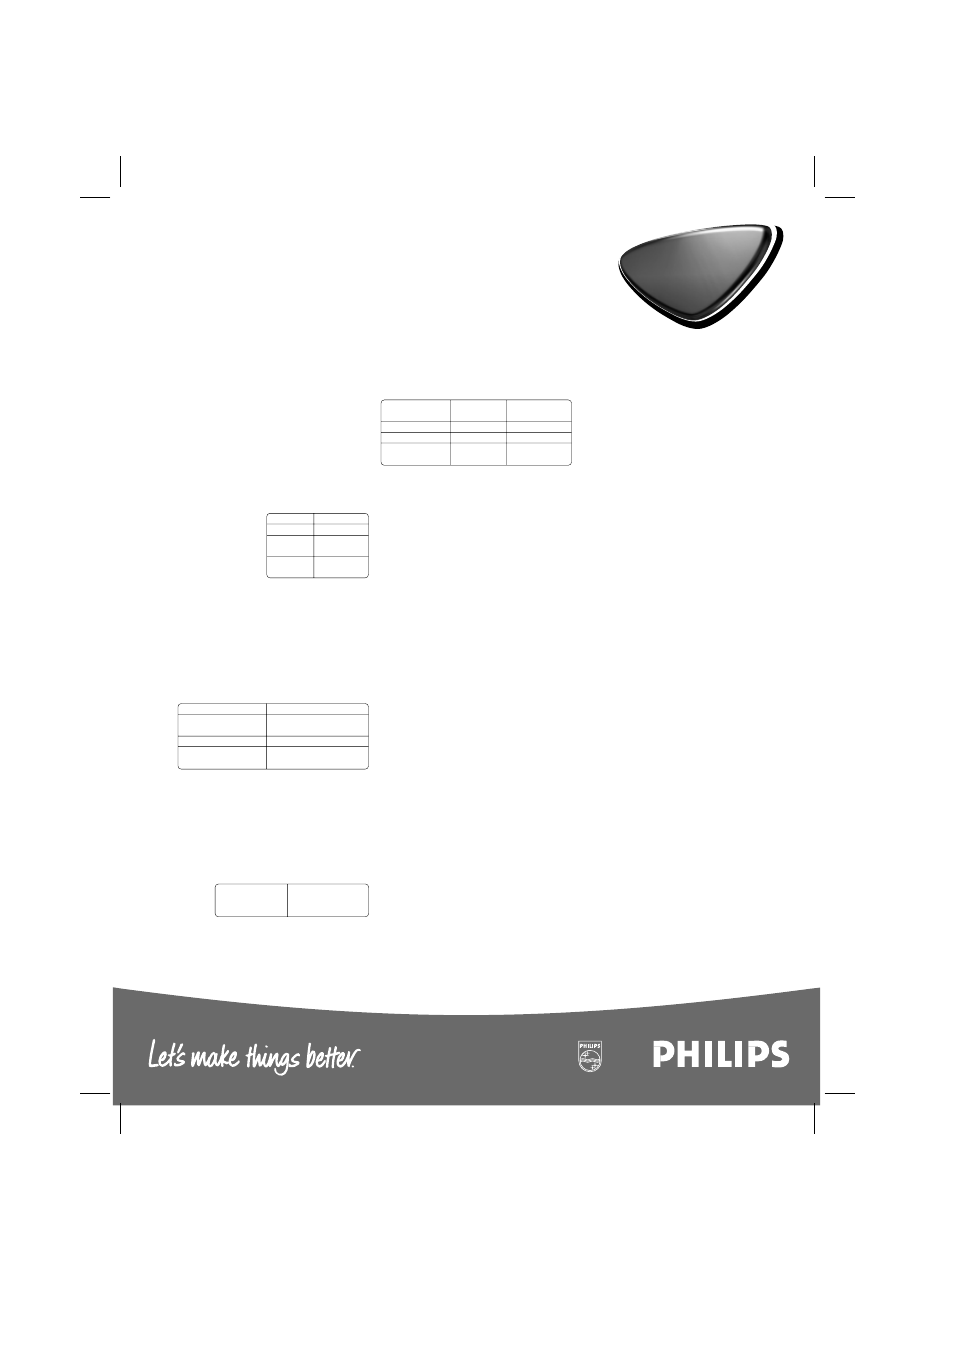 Dvd-video player | Philips DVD953AT User Manual | Page 2 / 2